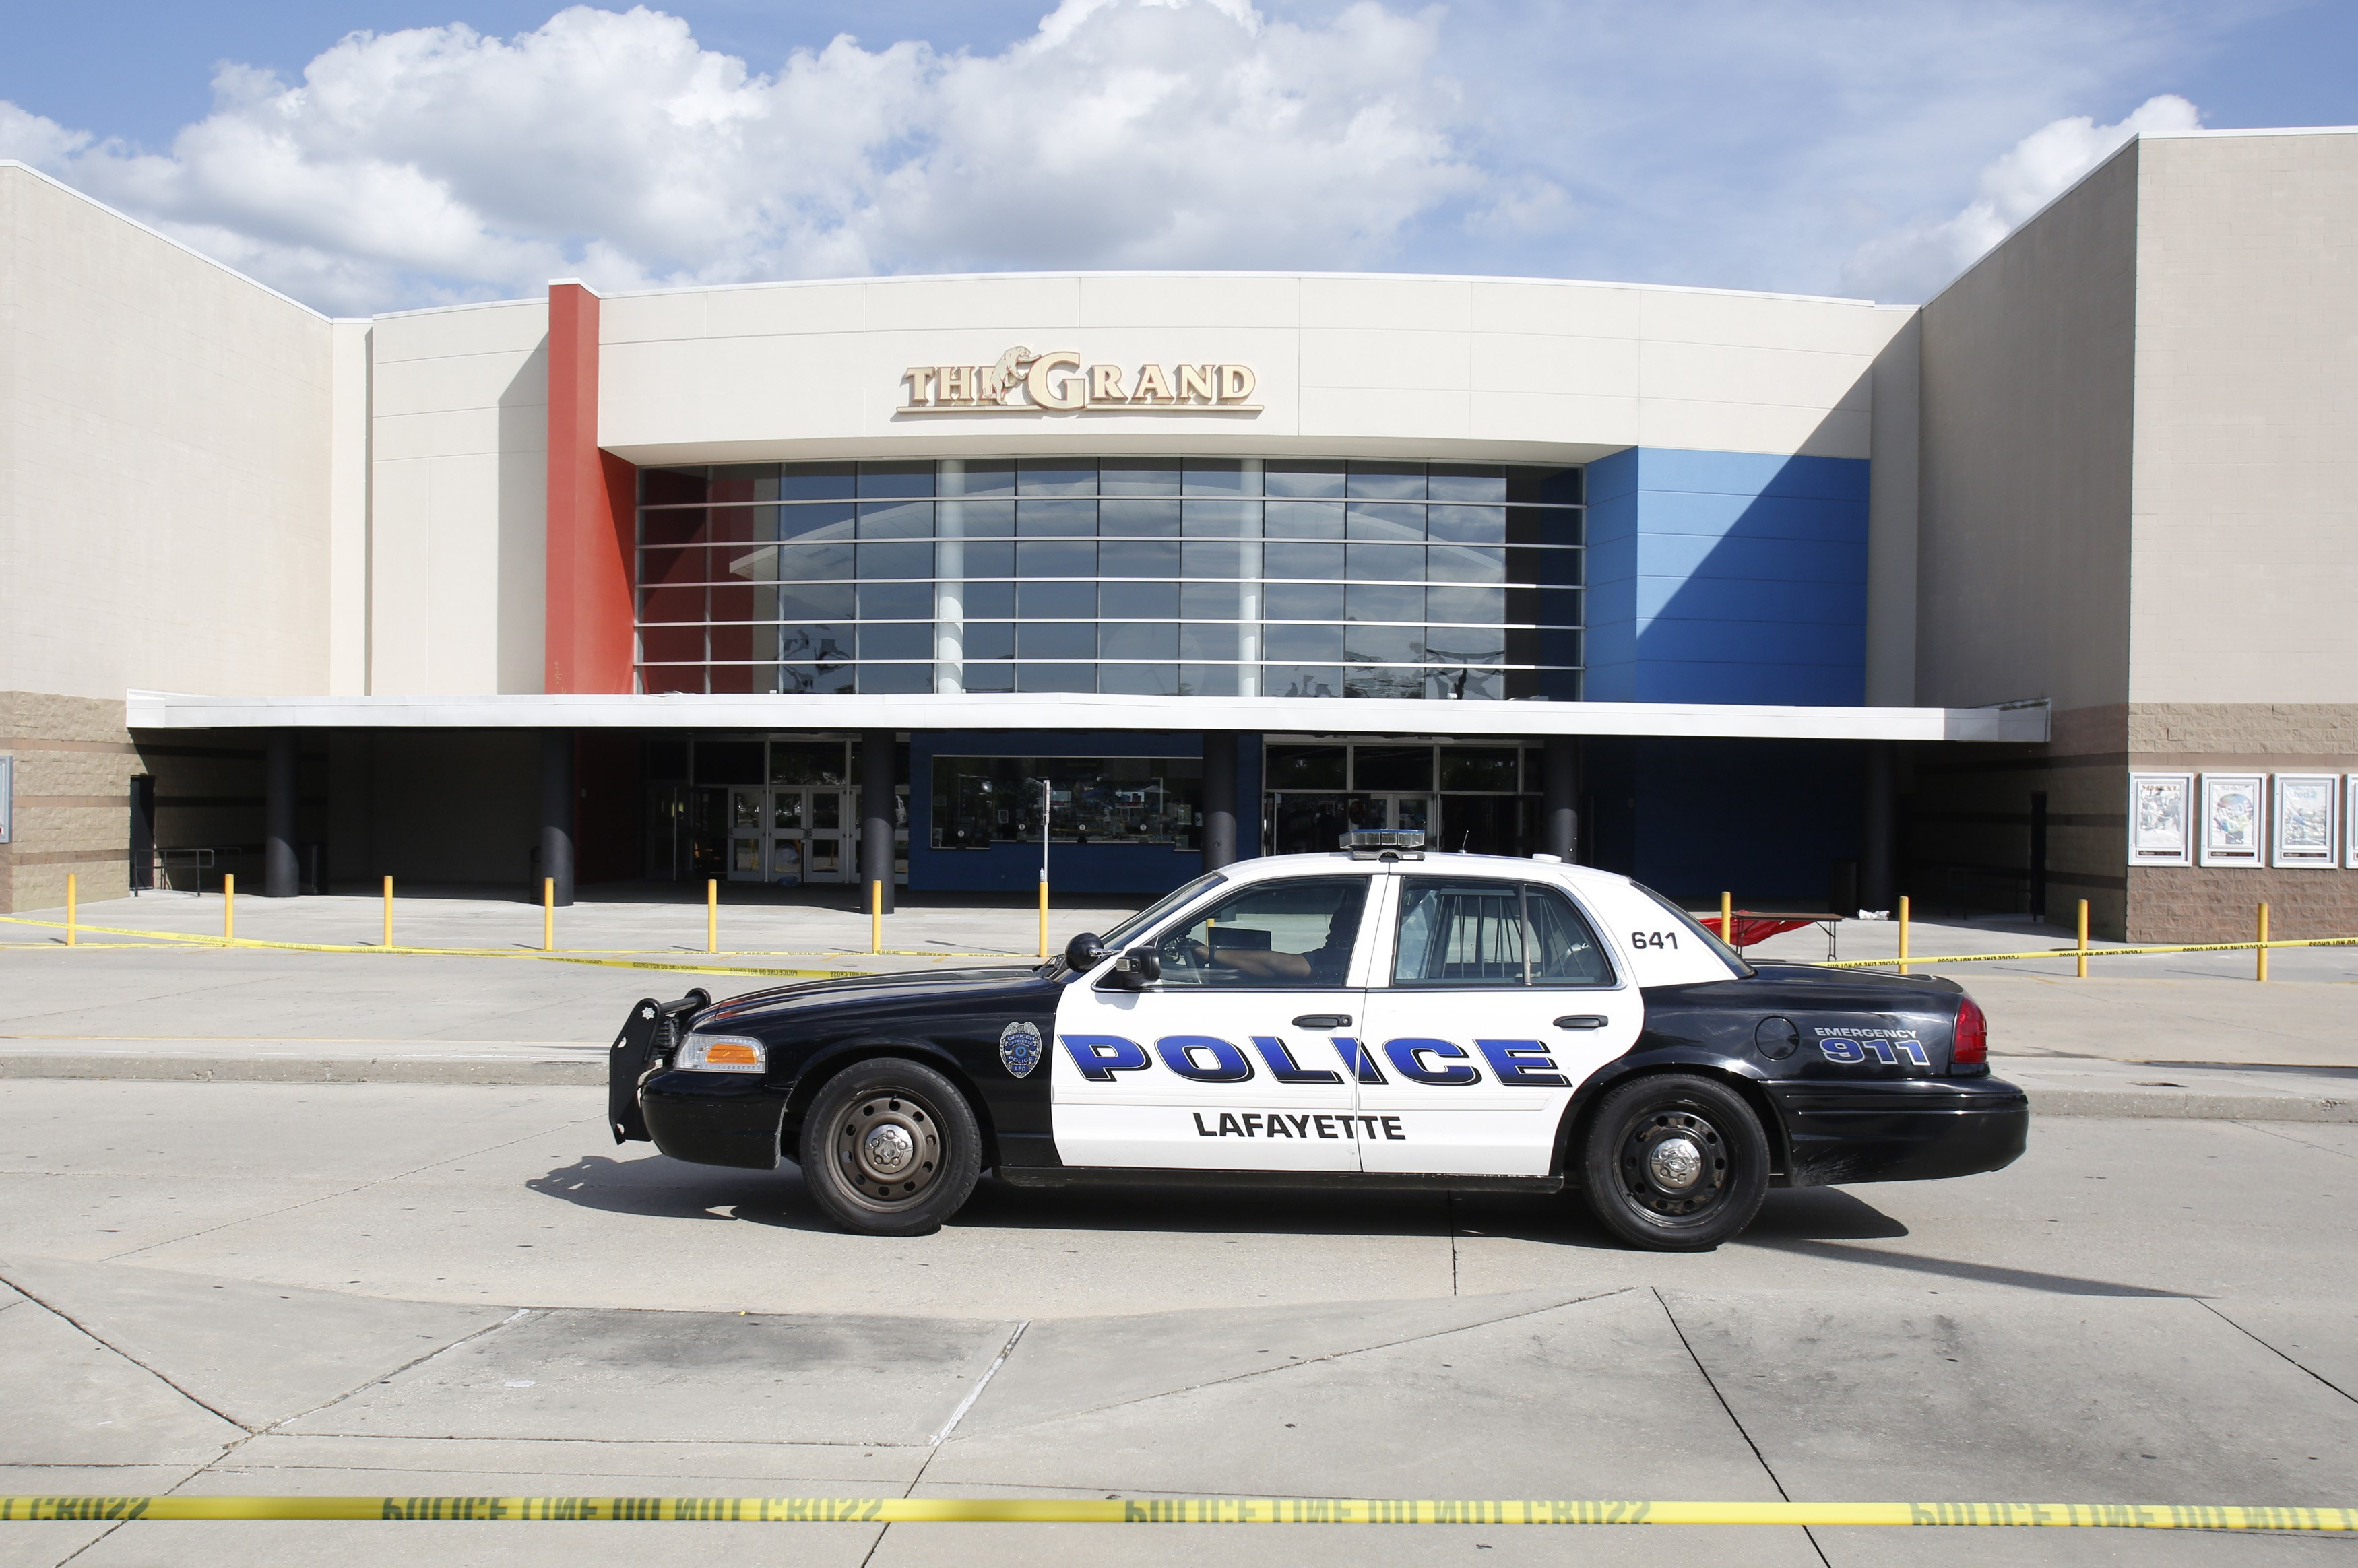 A police car stands outside The Grand Theatre on July 24, 2015 in Lafayette, La., following the previous night's deadly shooting.